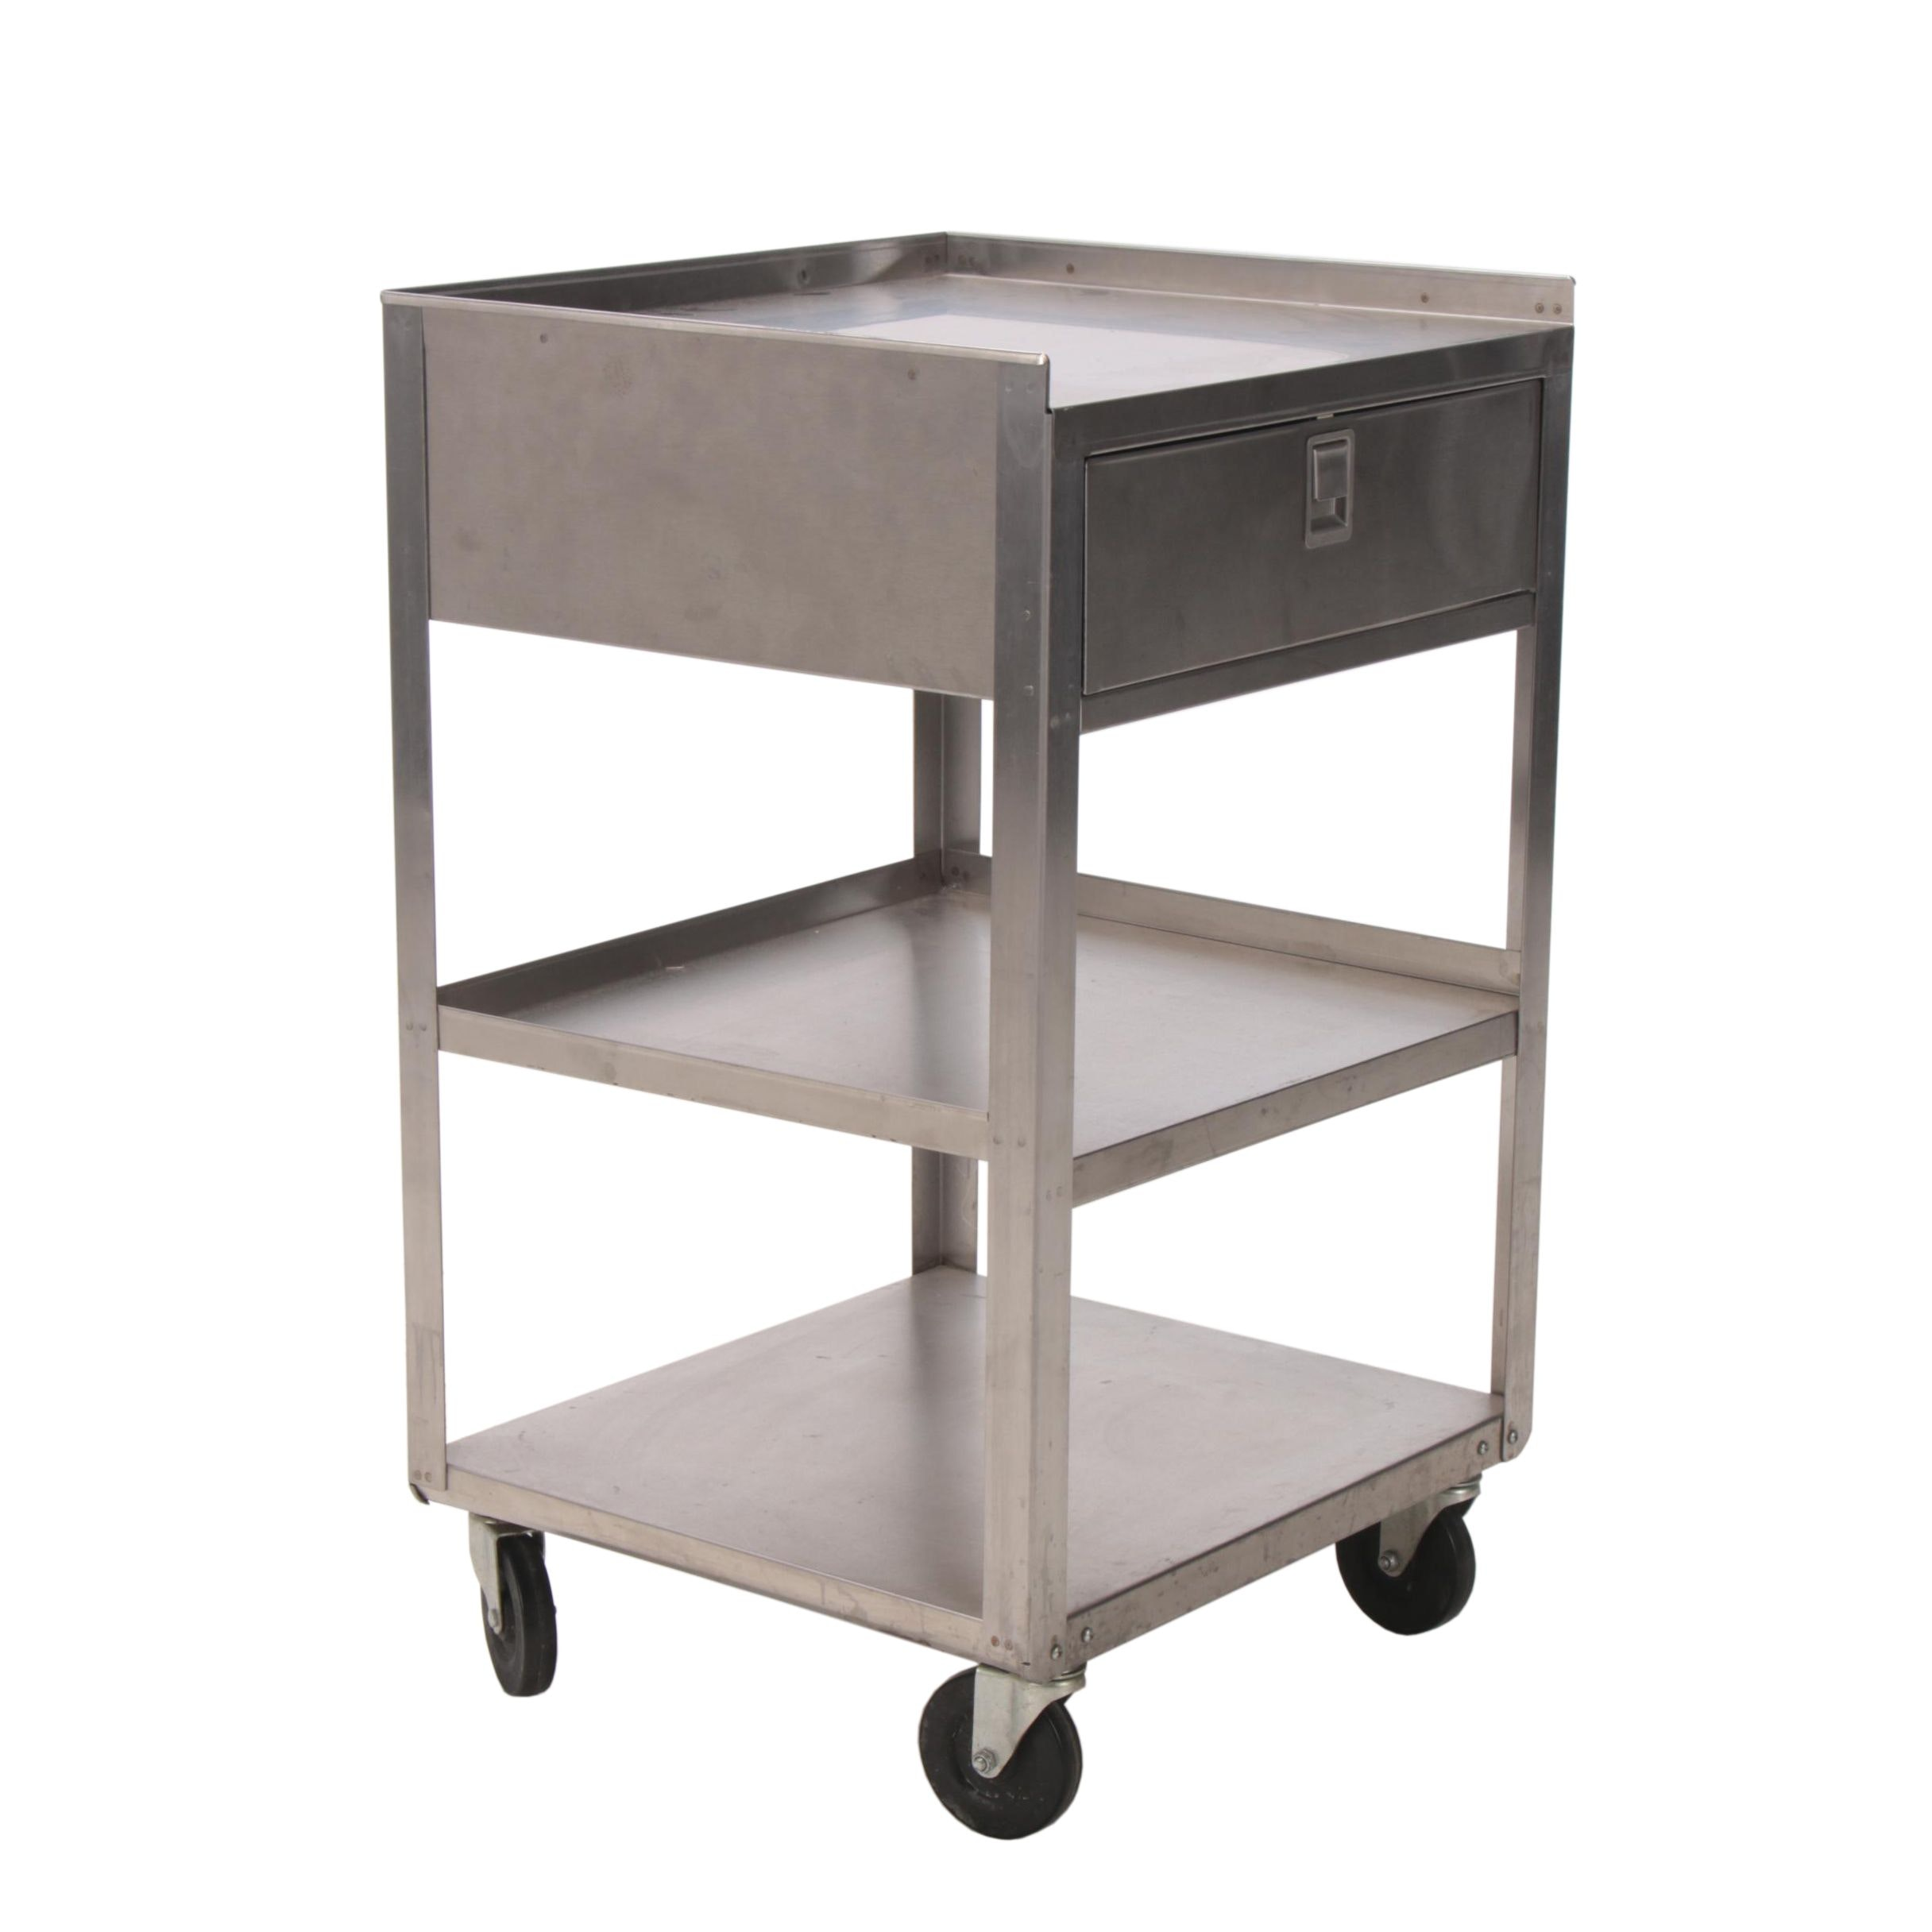 Industrial Stainless Steel Three-Tier Cart, 20th Century